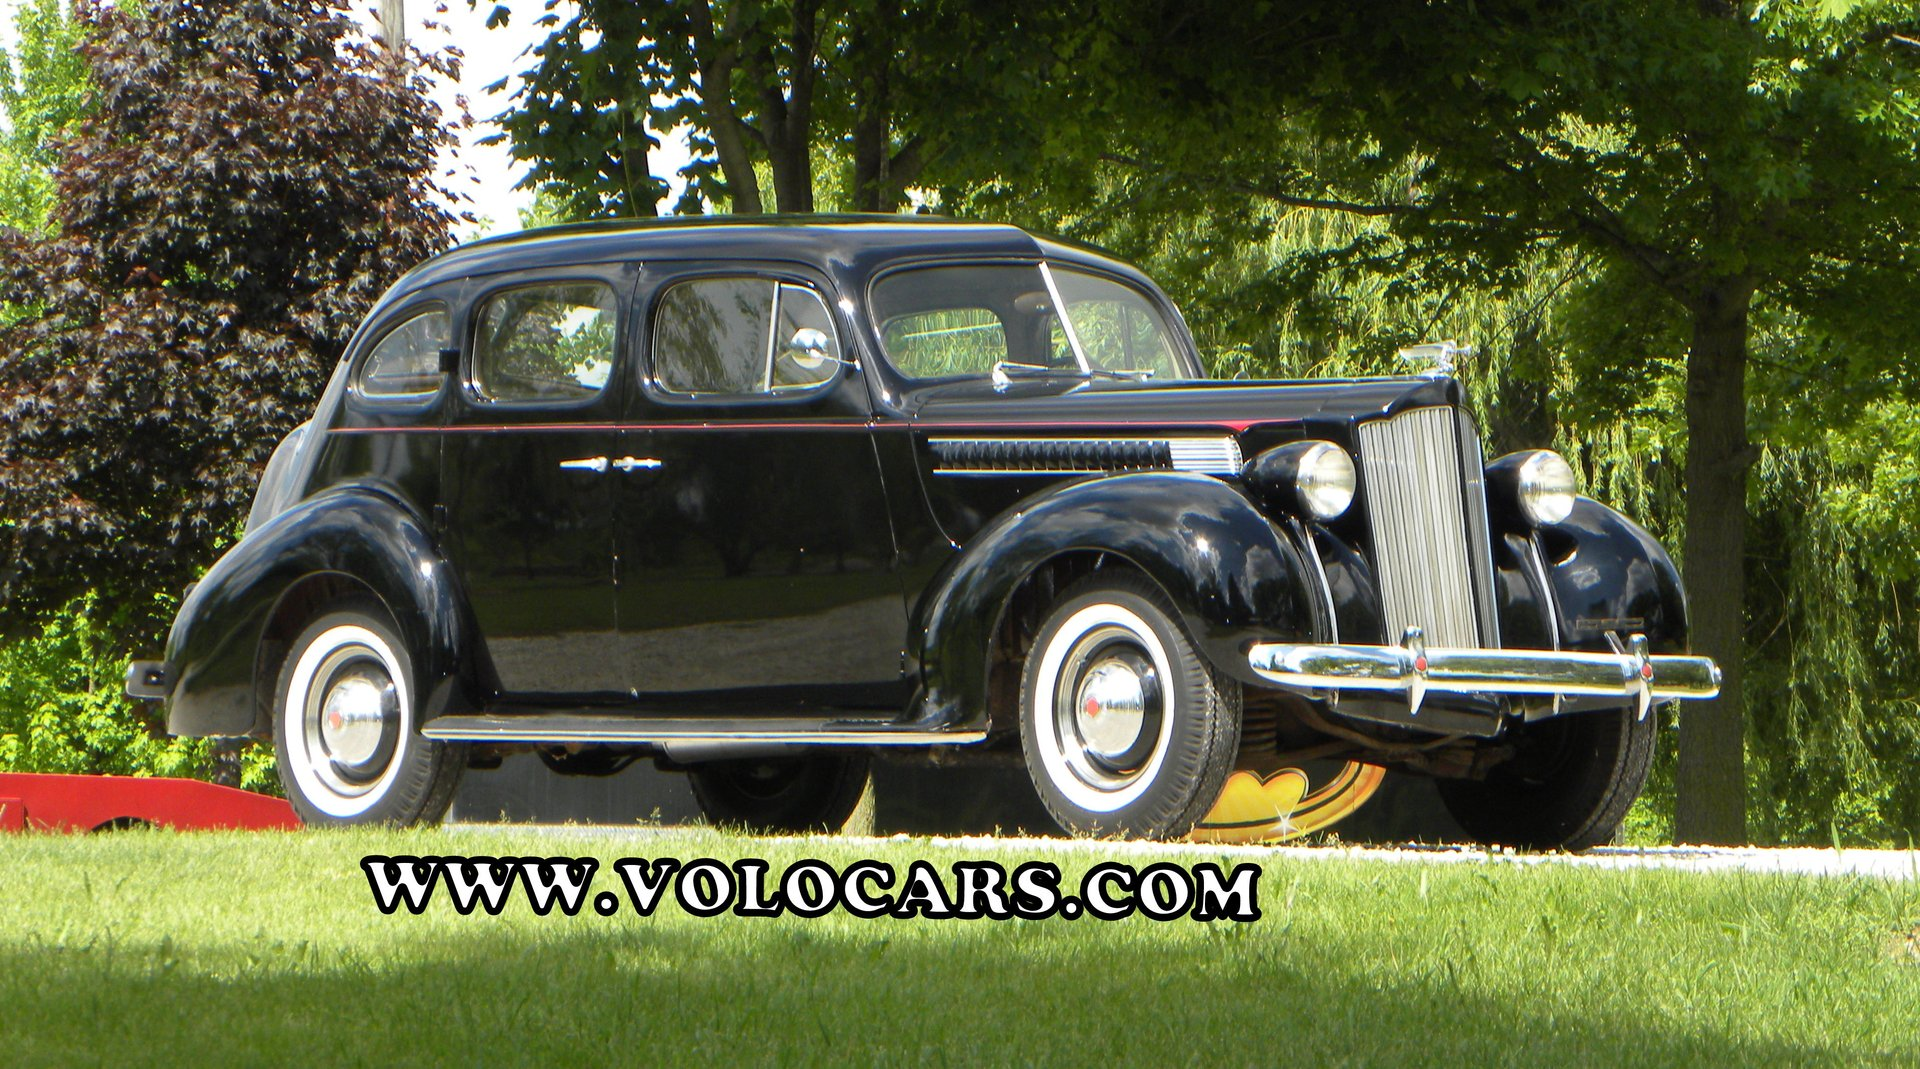 1939 packard 110 sedan series 1700